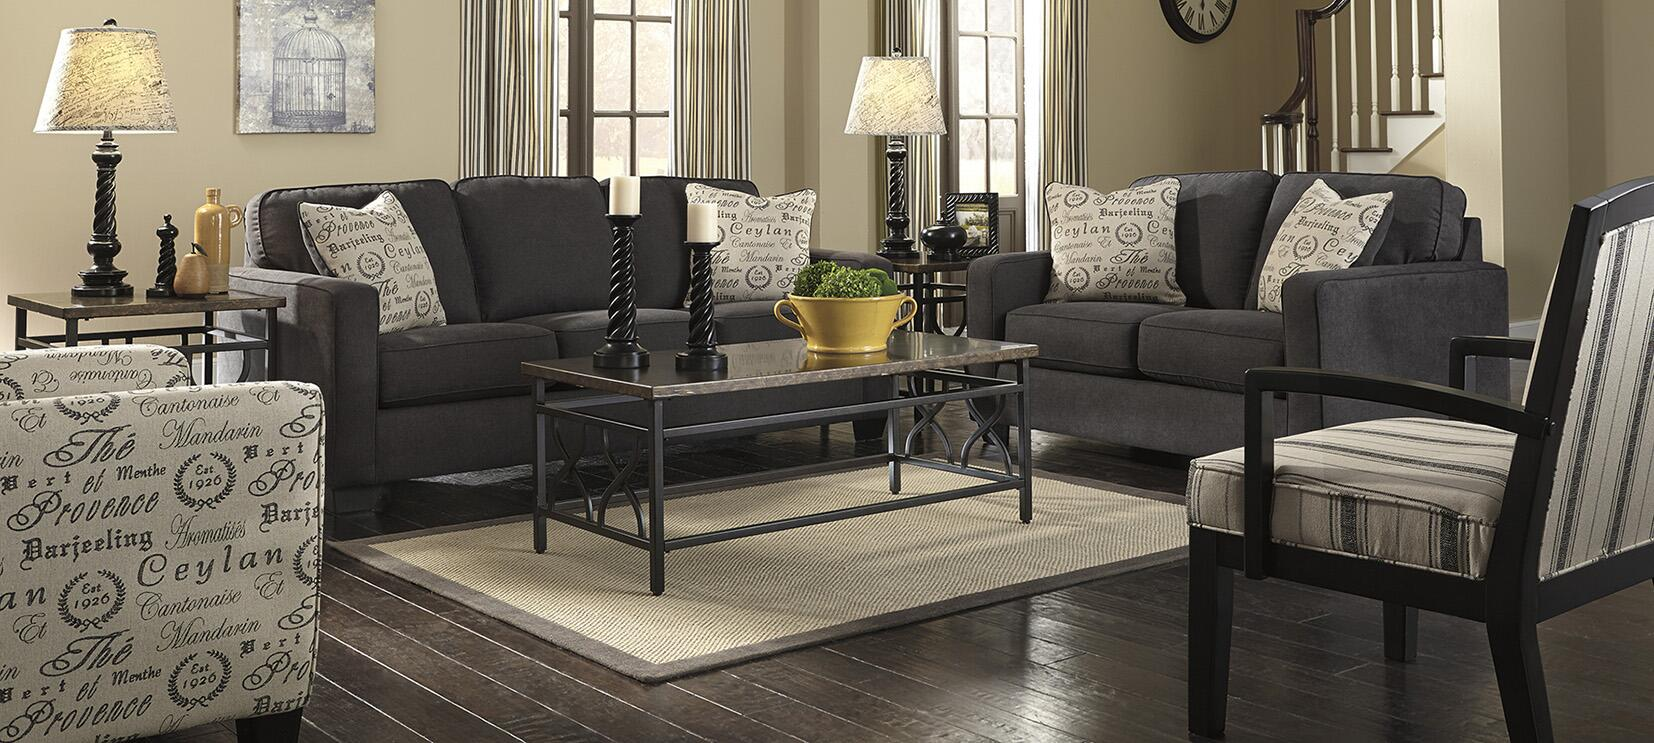 ... Milo Italia Elisha Loveseat Shown With Matching Sofa, Accent Chair And  Showood Chair ...